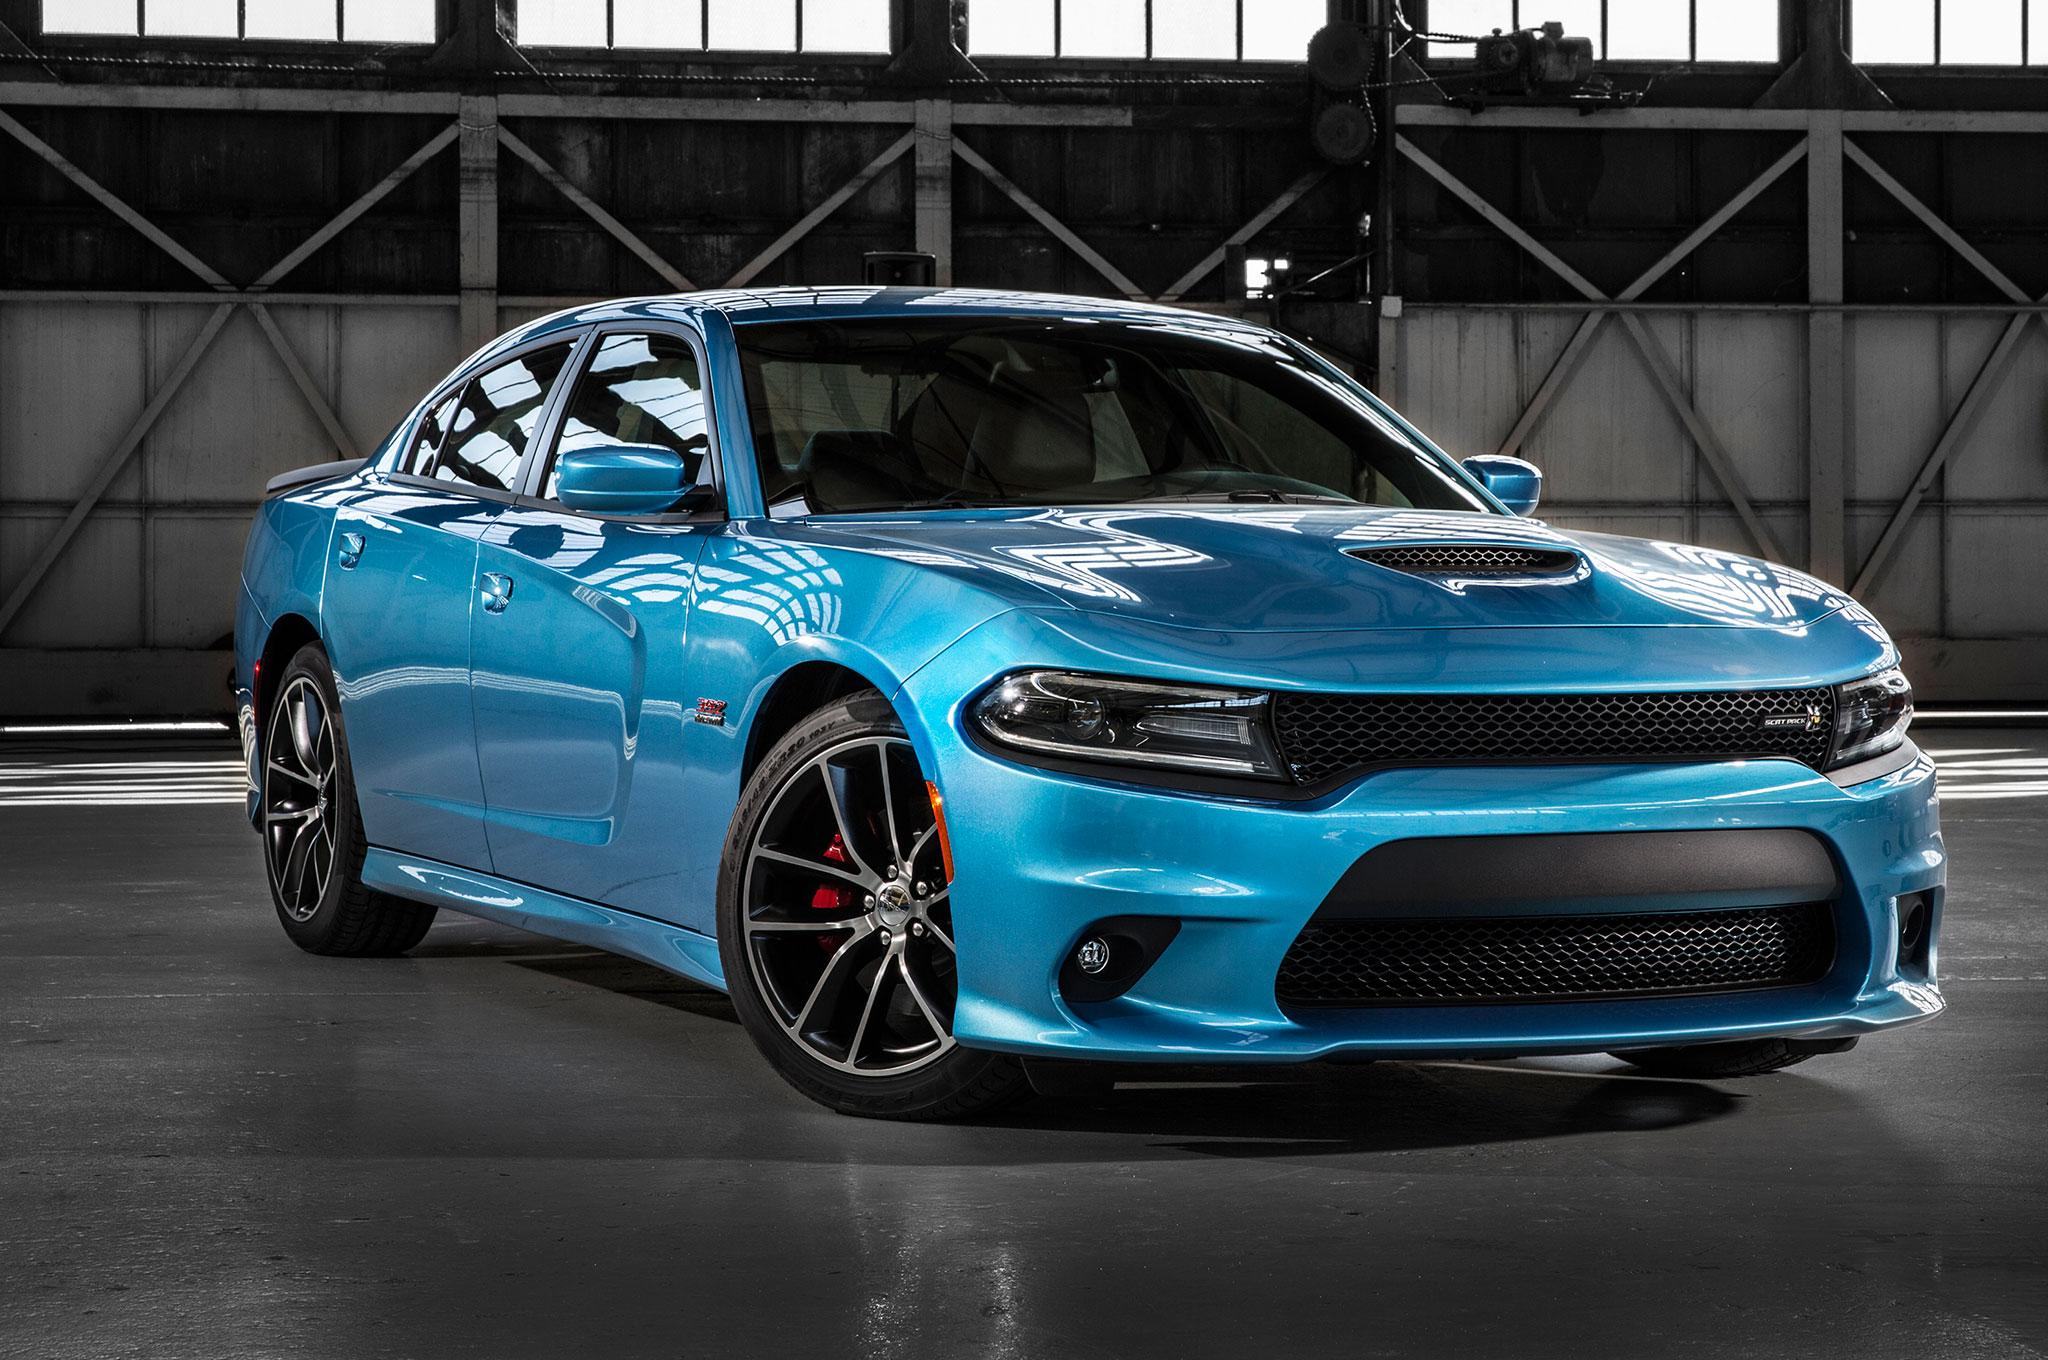 2017 Dodge Charger Rt Pack